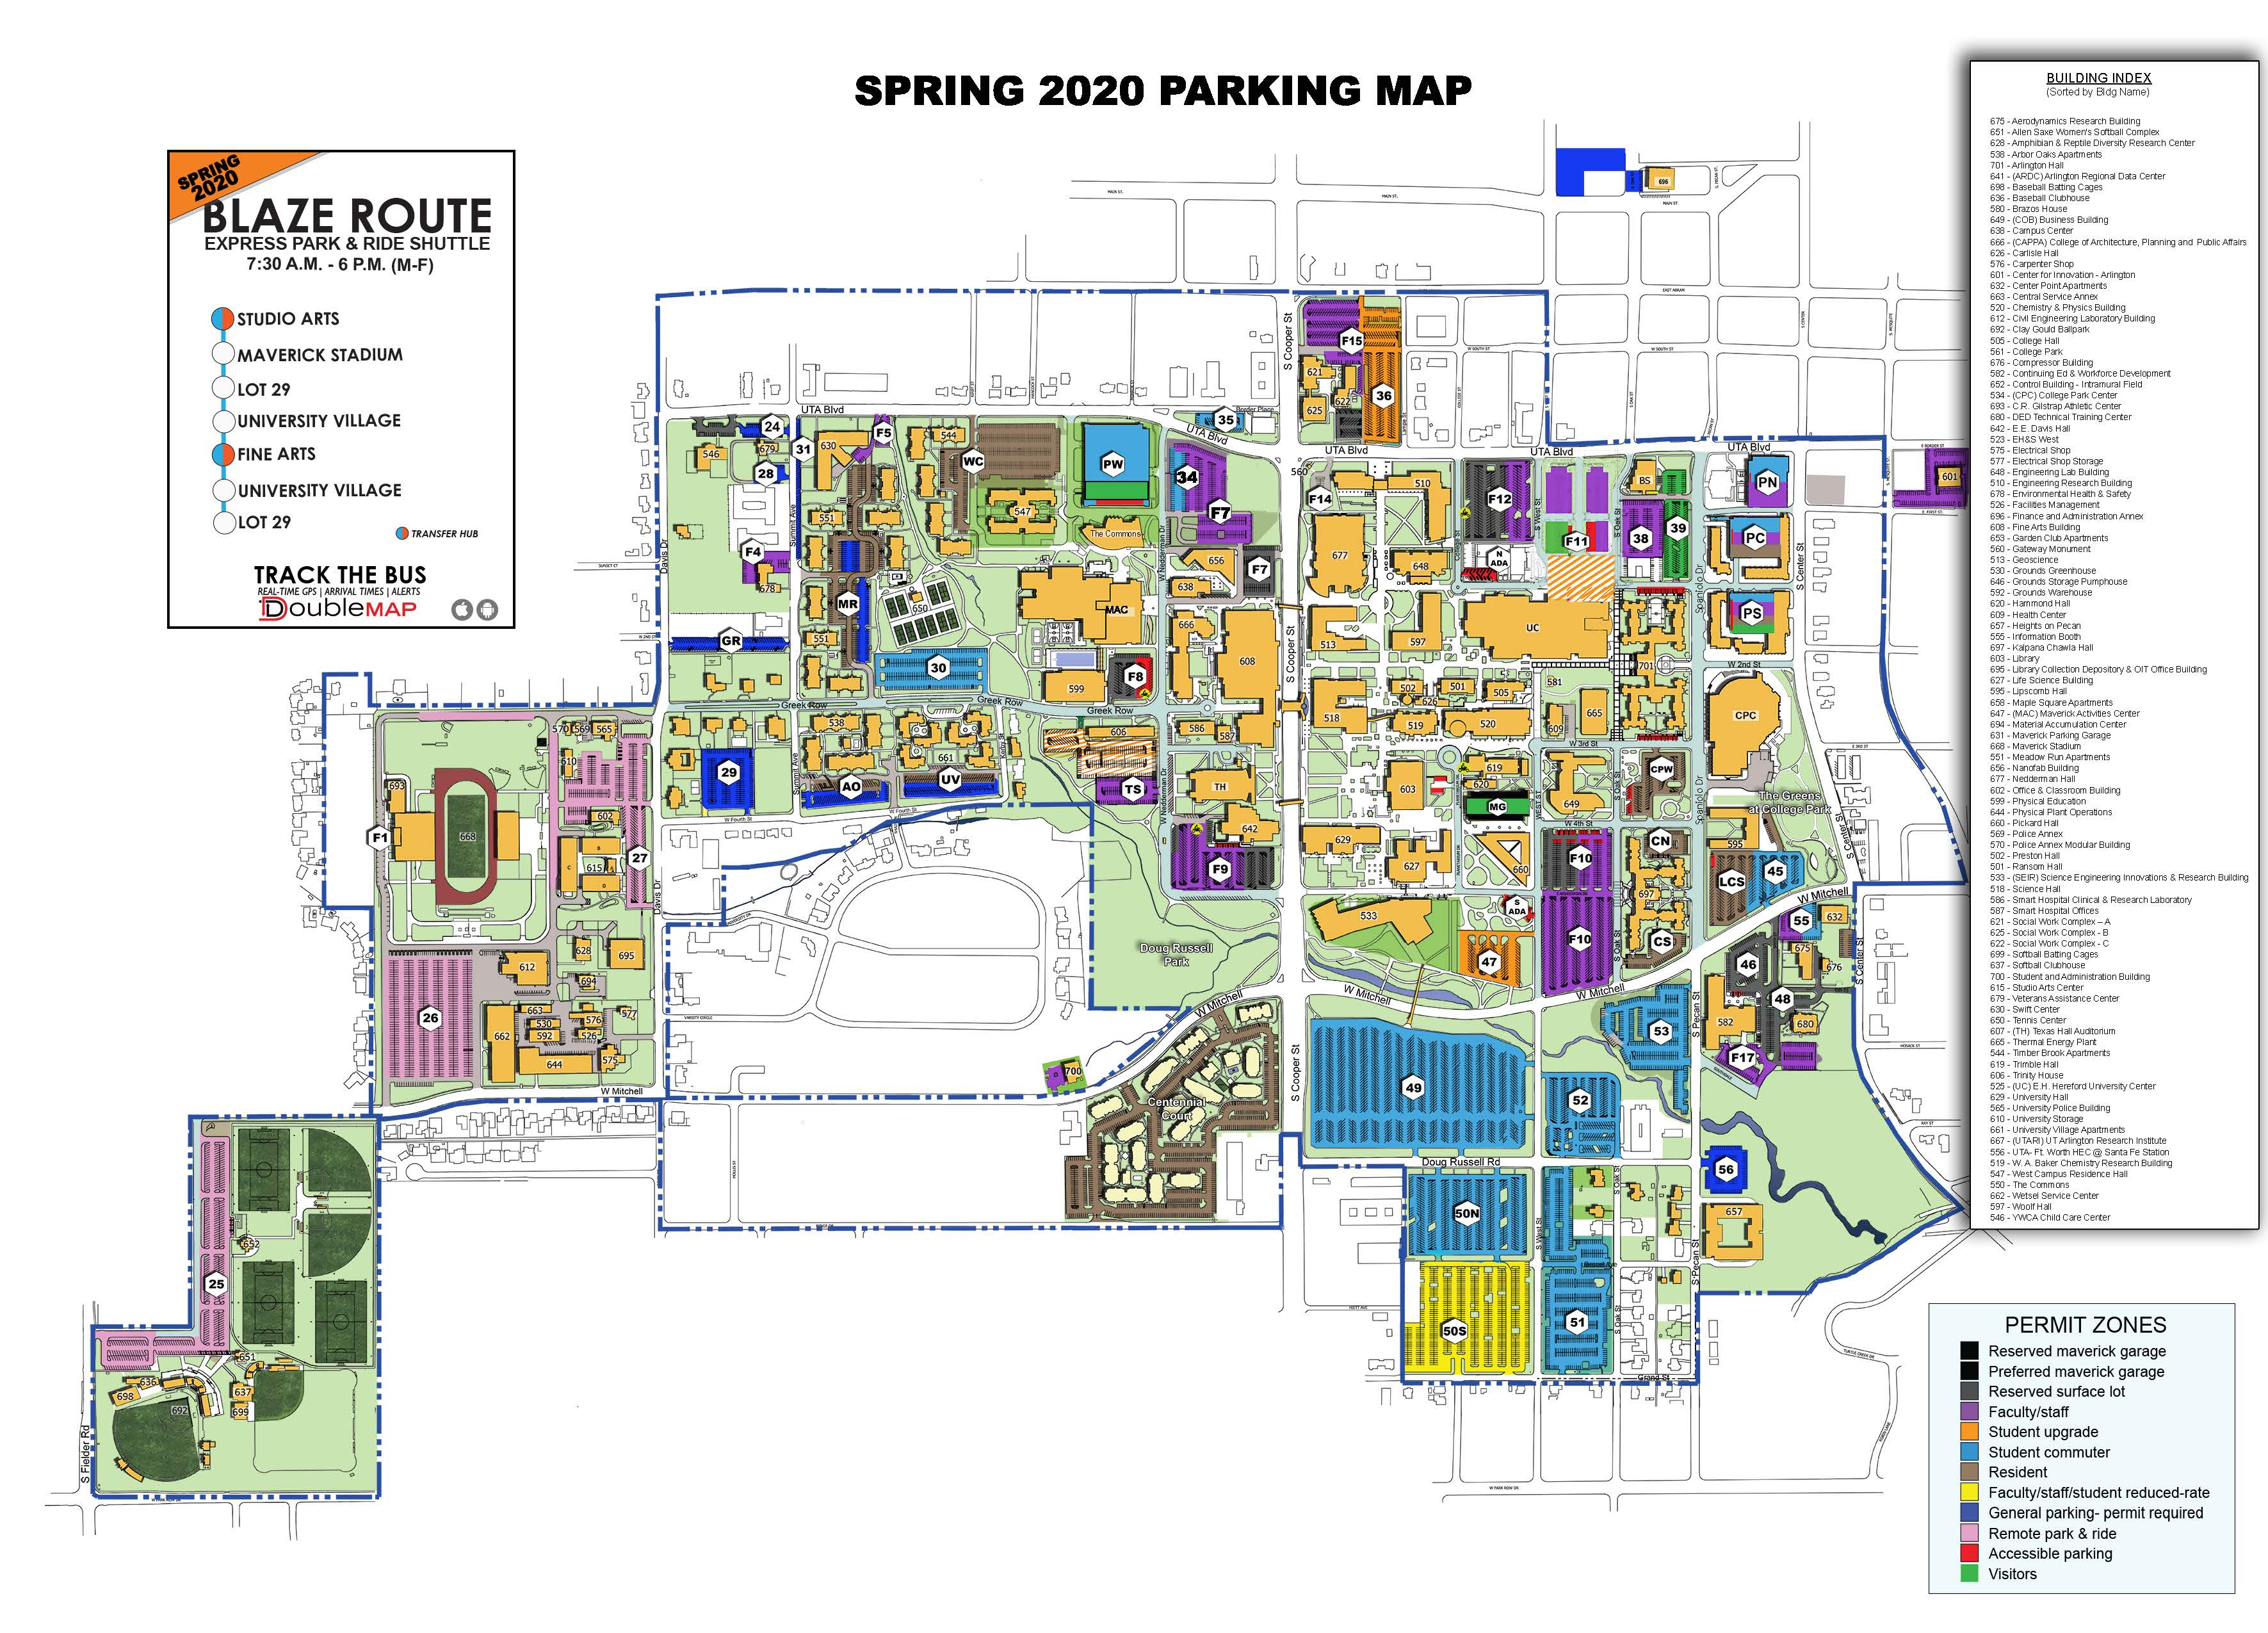 university of texas at arlington campus map General Parking Map Parking And Transportation Services The